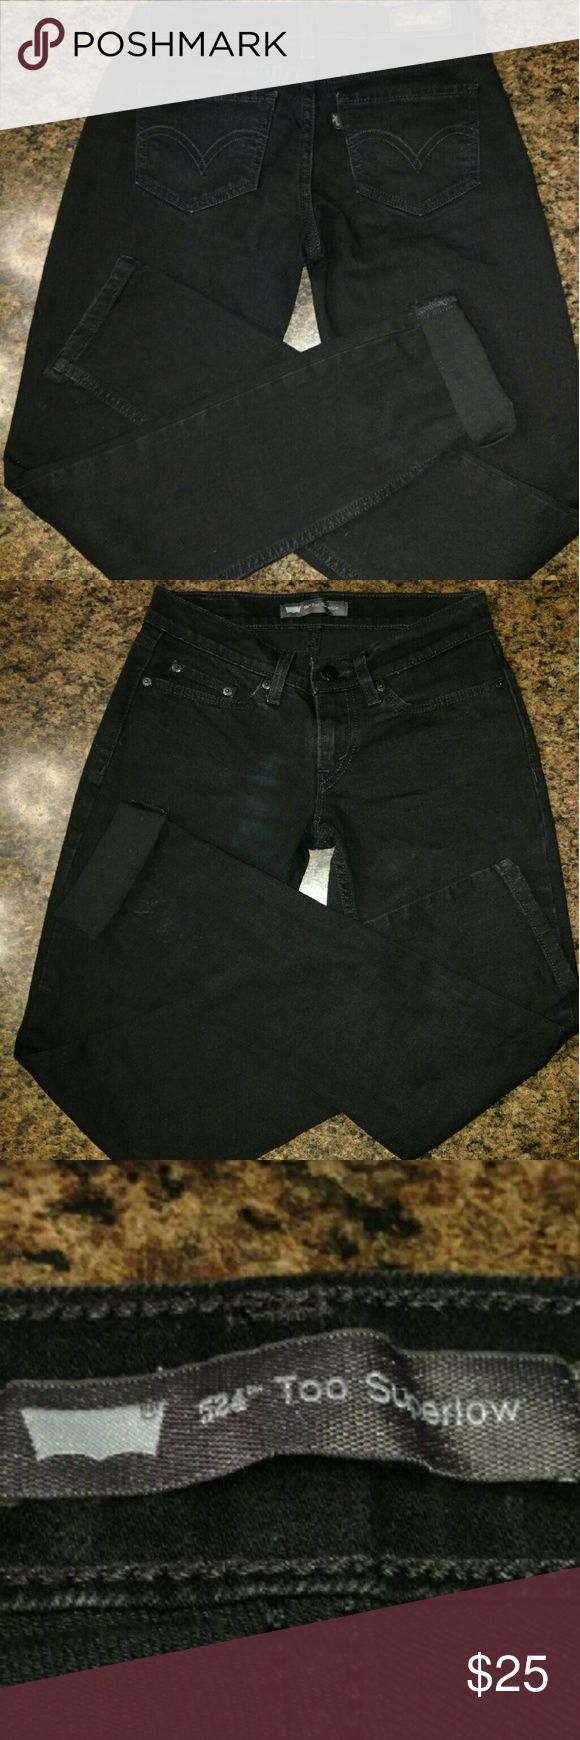 Whiskered black Levi's 524 Too Superlow Whiskered black Levi's 524 Superlow jeans. Nice condition. The flash from the camera makes it look like there's a spot on them but it isn't....Perfect condition. Levi's Jeans Skinny